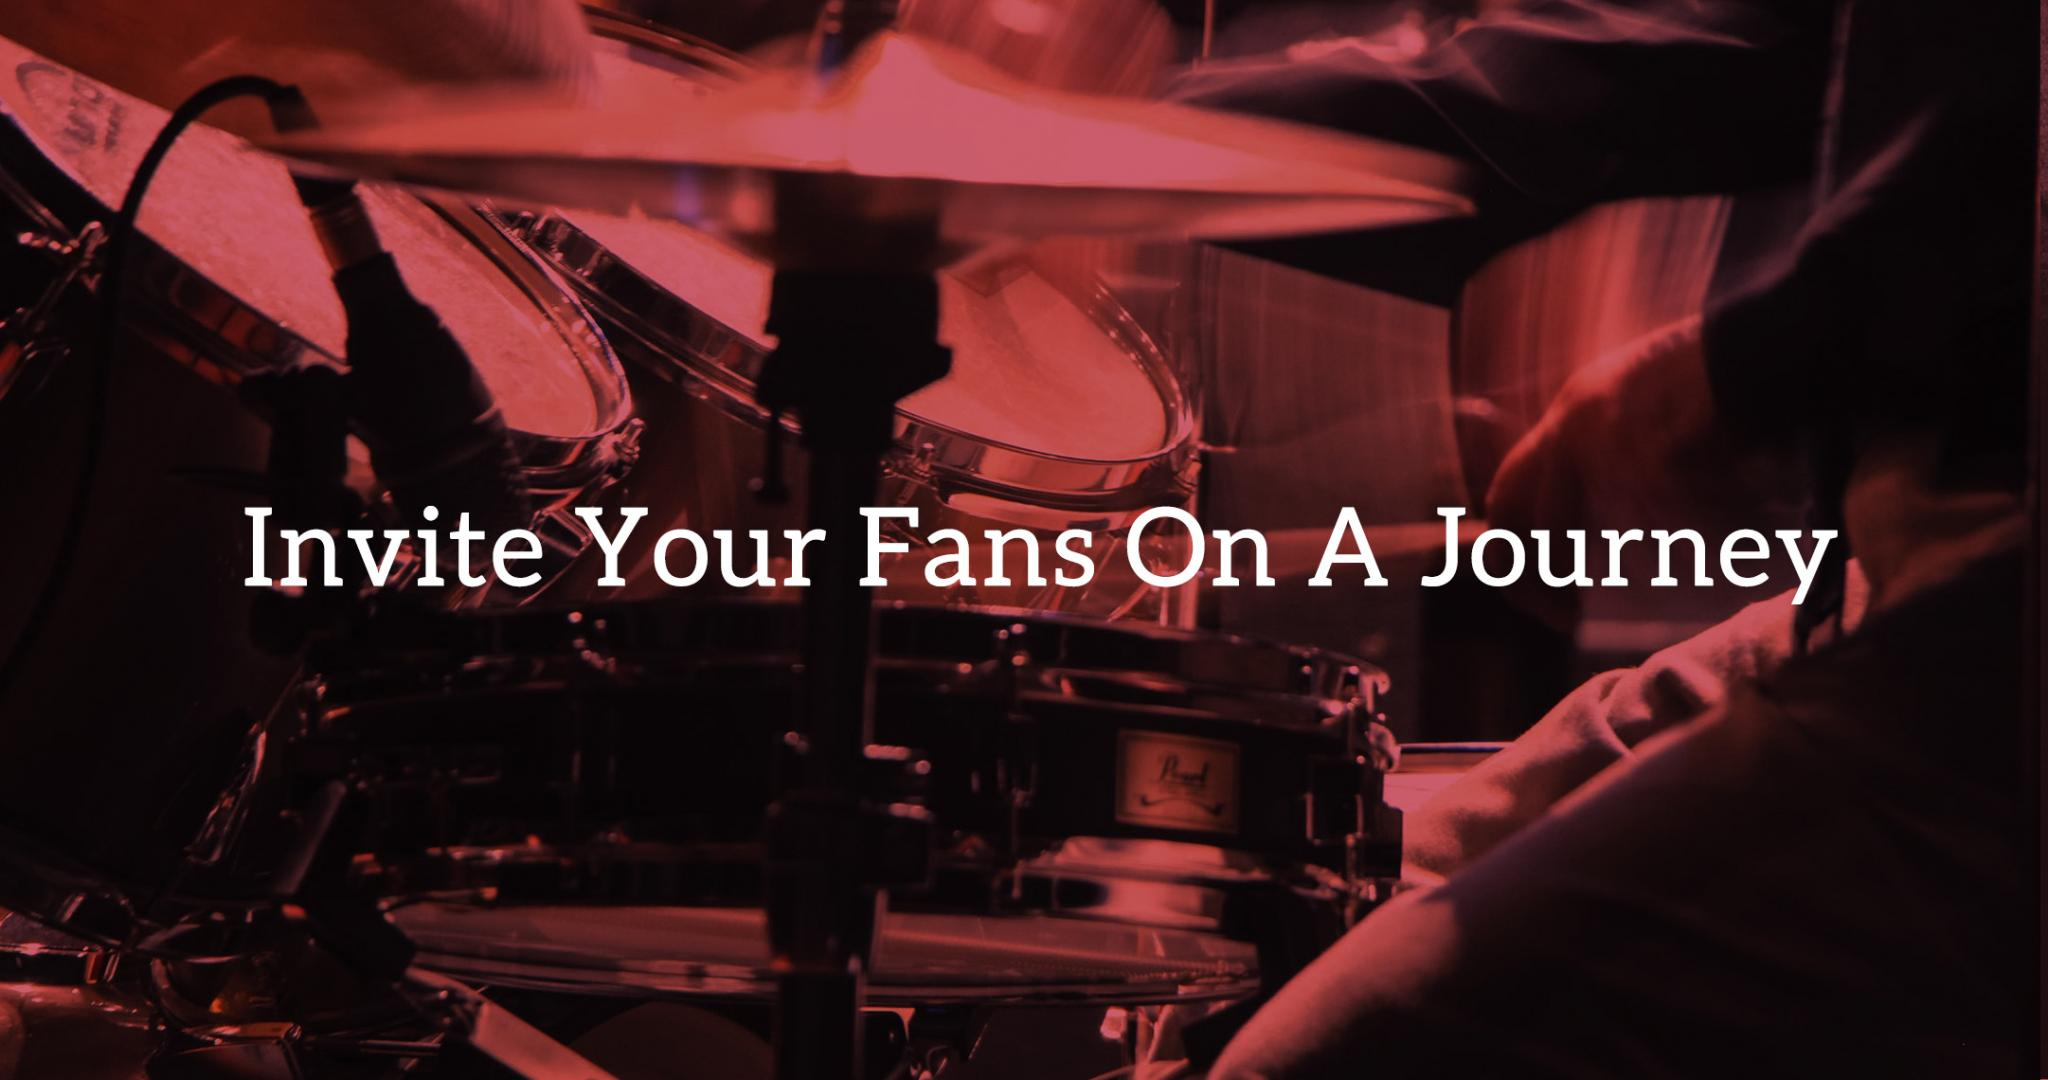 12 Ways: Invite Your Fans On A Journey